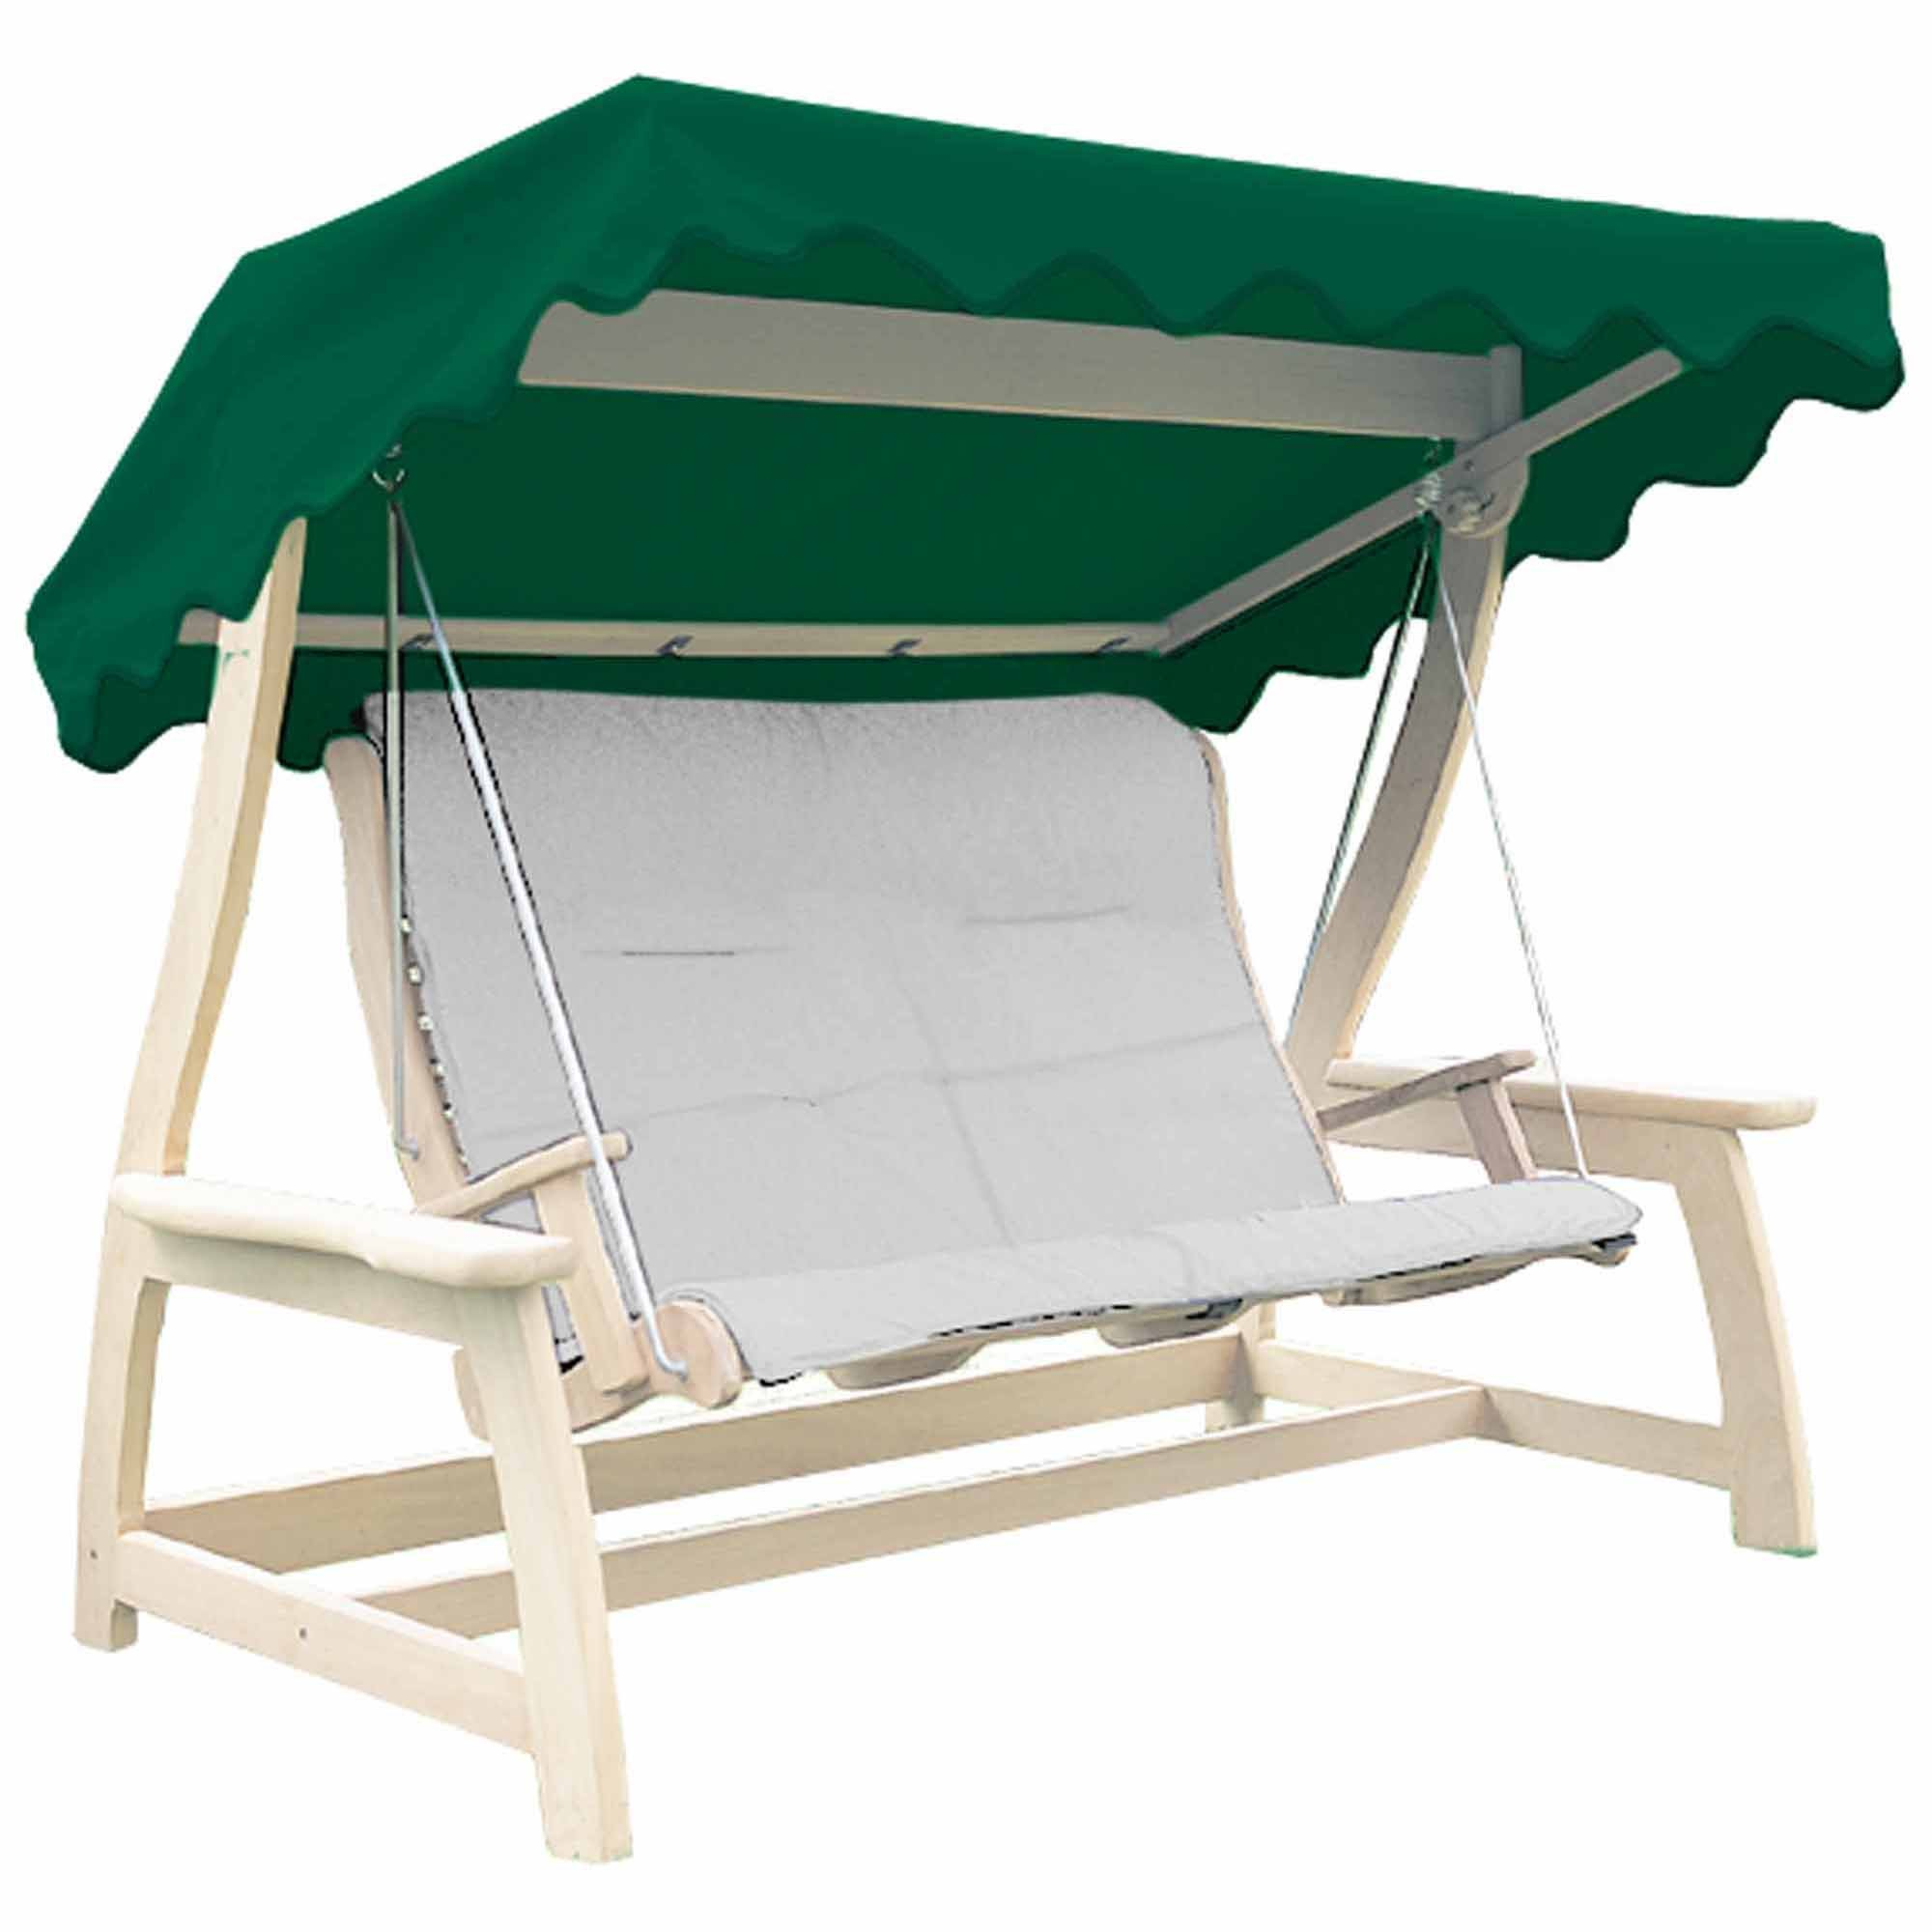 Alexander Rose Acrylic Swing Seat Canopy Green